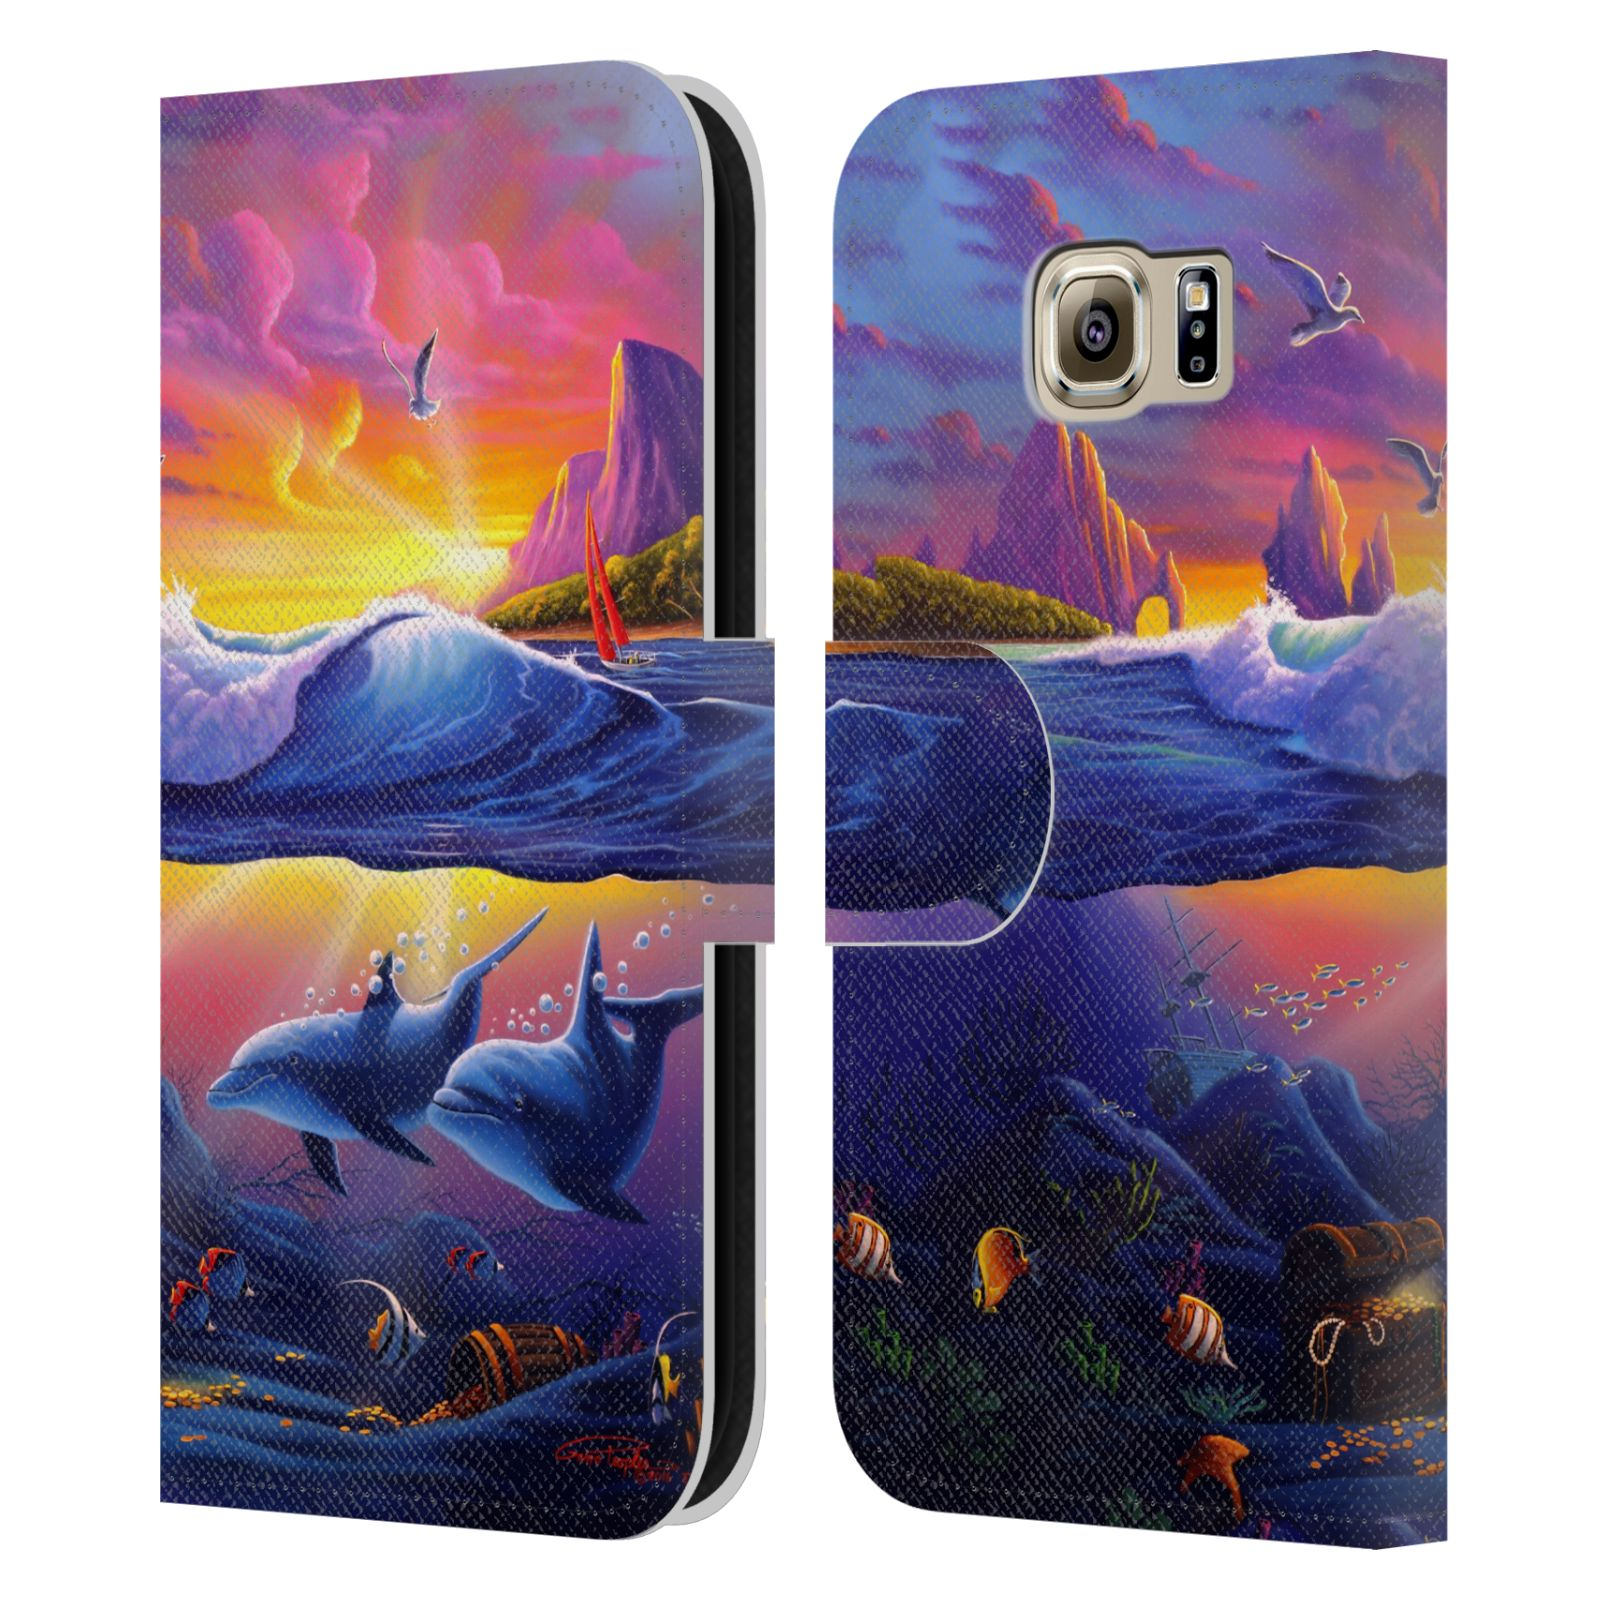 OFFICIAL-GENO-PEOPLES-ART-HOLIDAY-LEATHER-BOOK-WALLET-CASE-FOR-SAMSUNG-PHONES-1